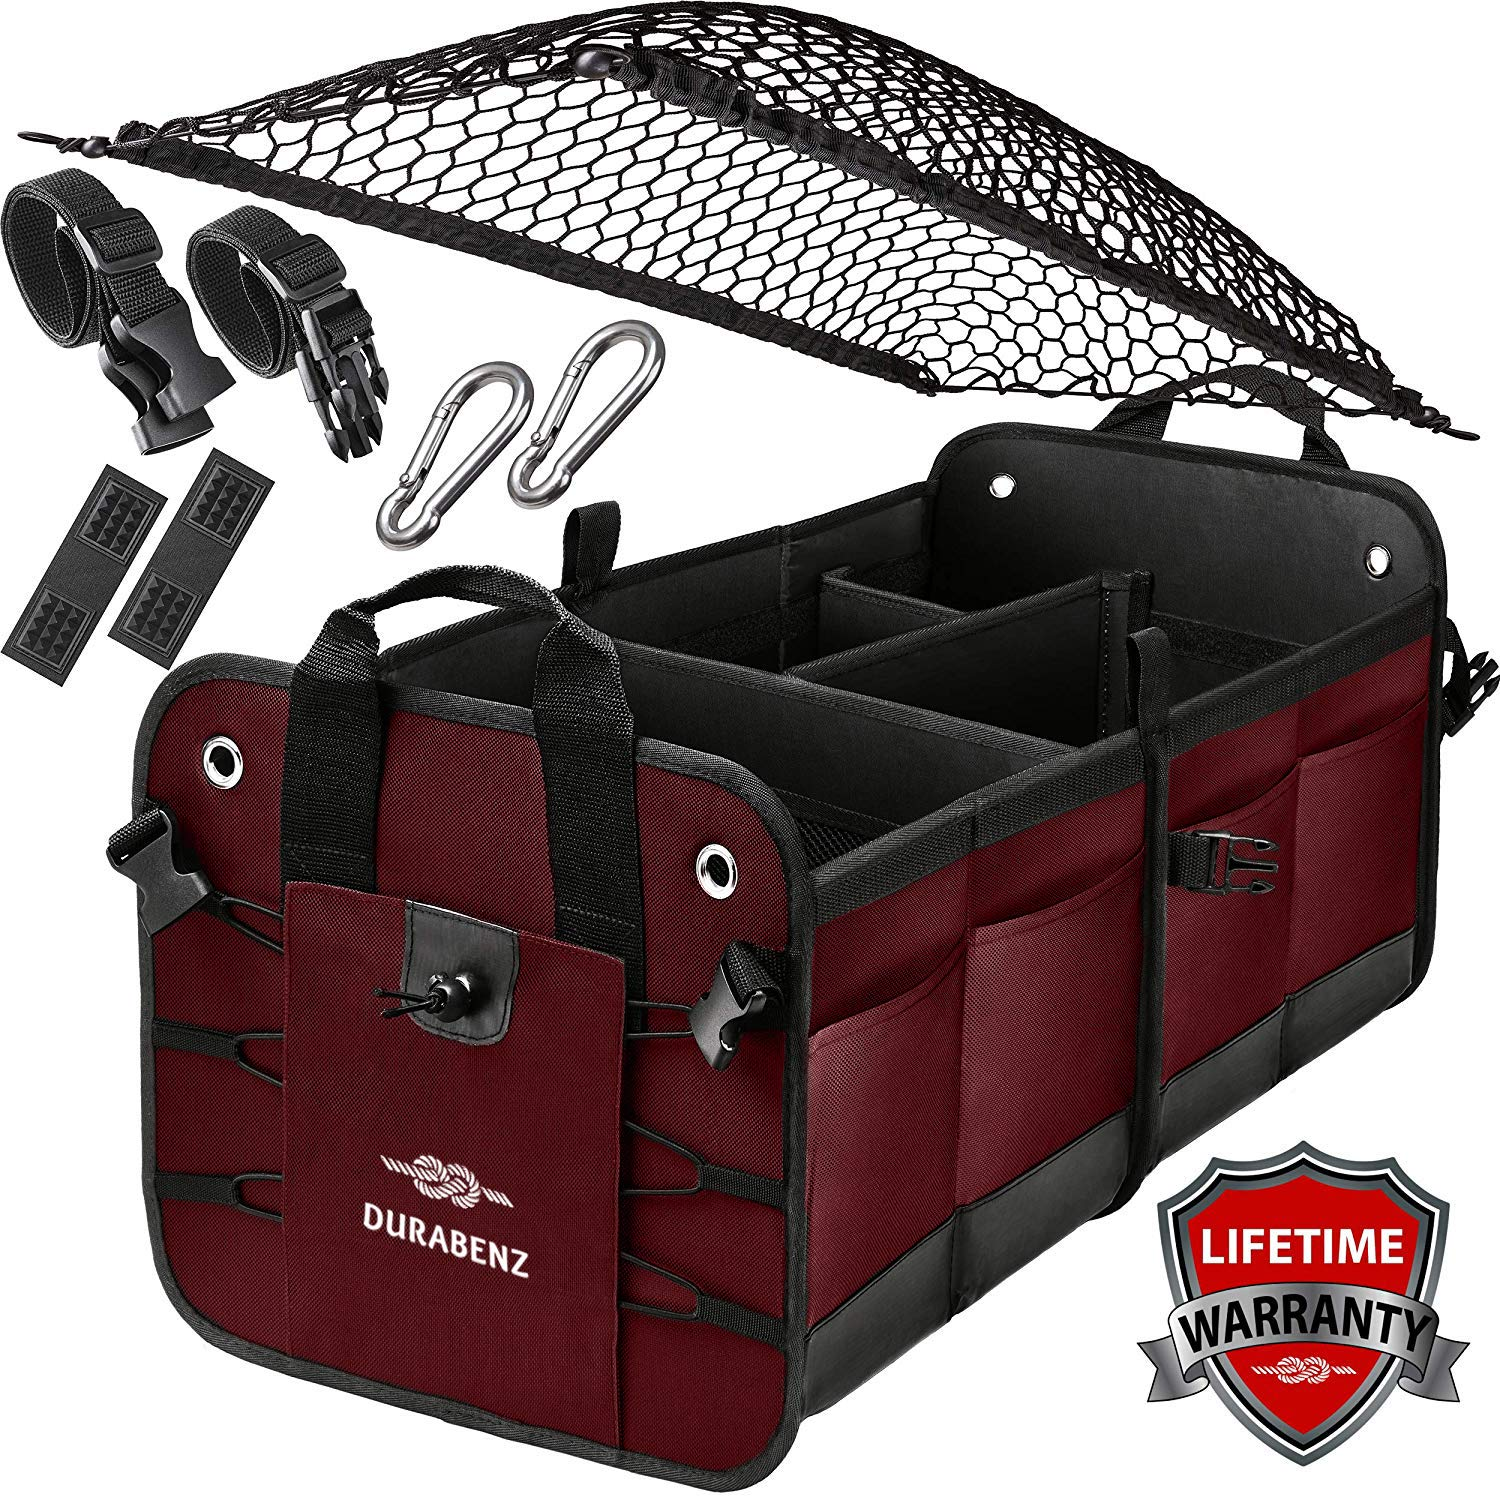 Durabenz Trunk Organizer with Covering Net, Attachable Non-Slip Pads, and Stainless Hooks, Cherrysh by Durabenz